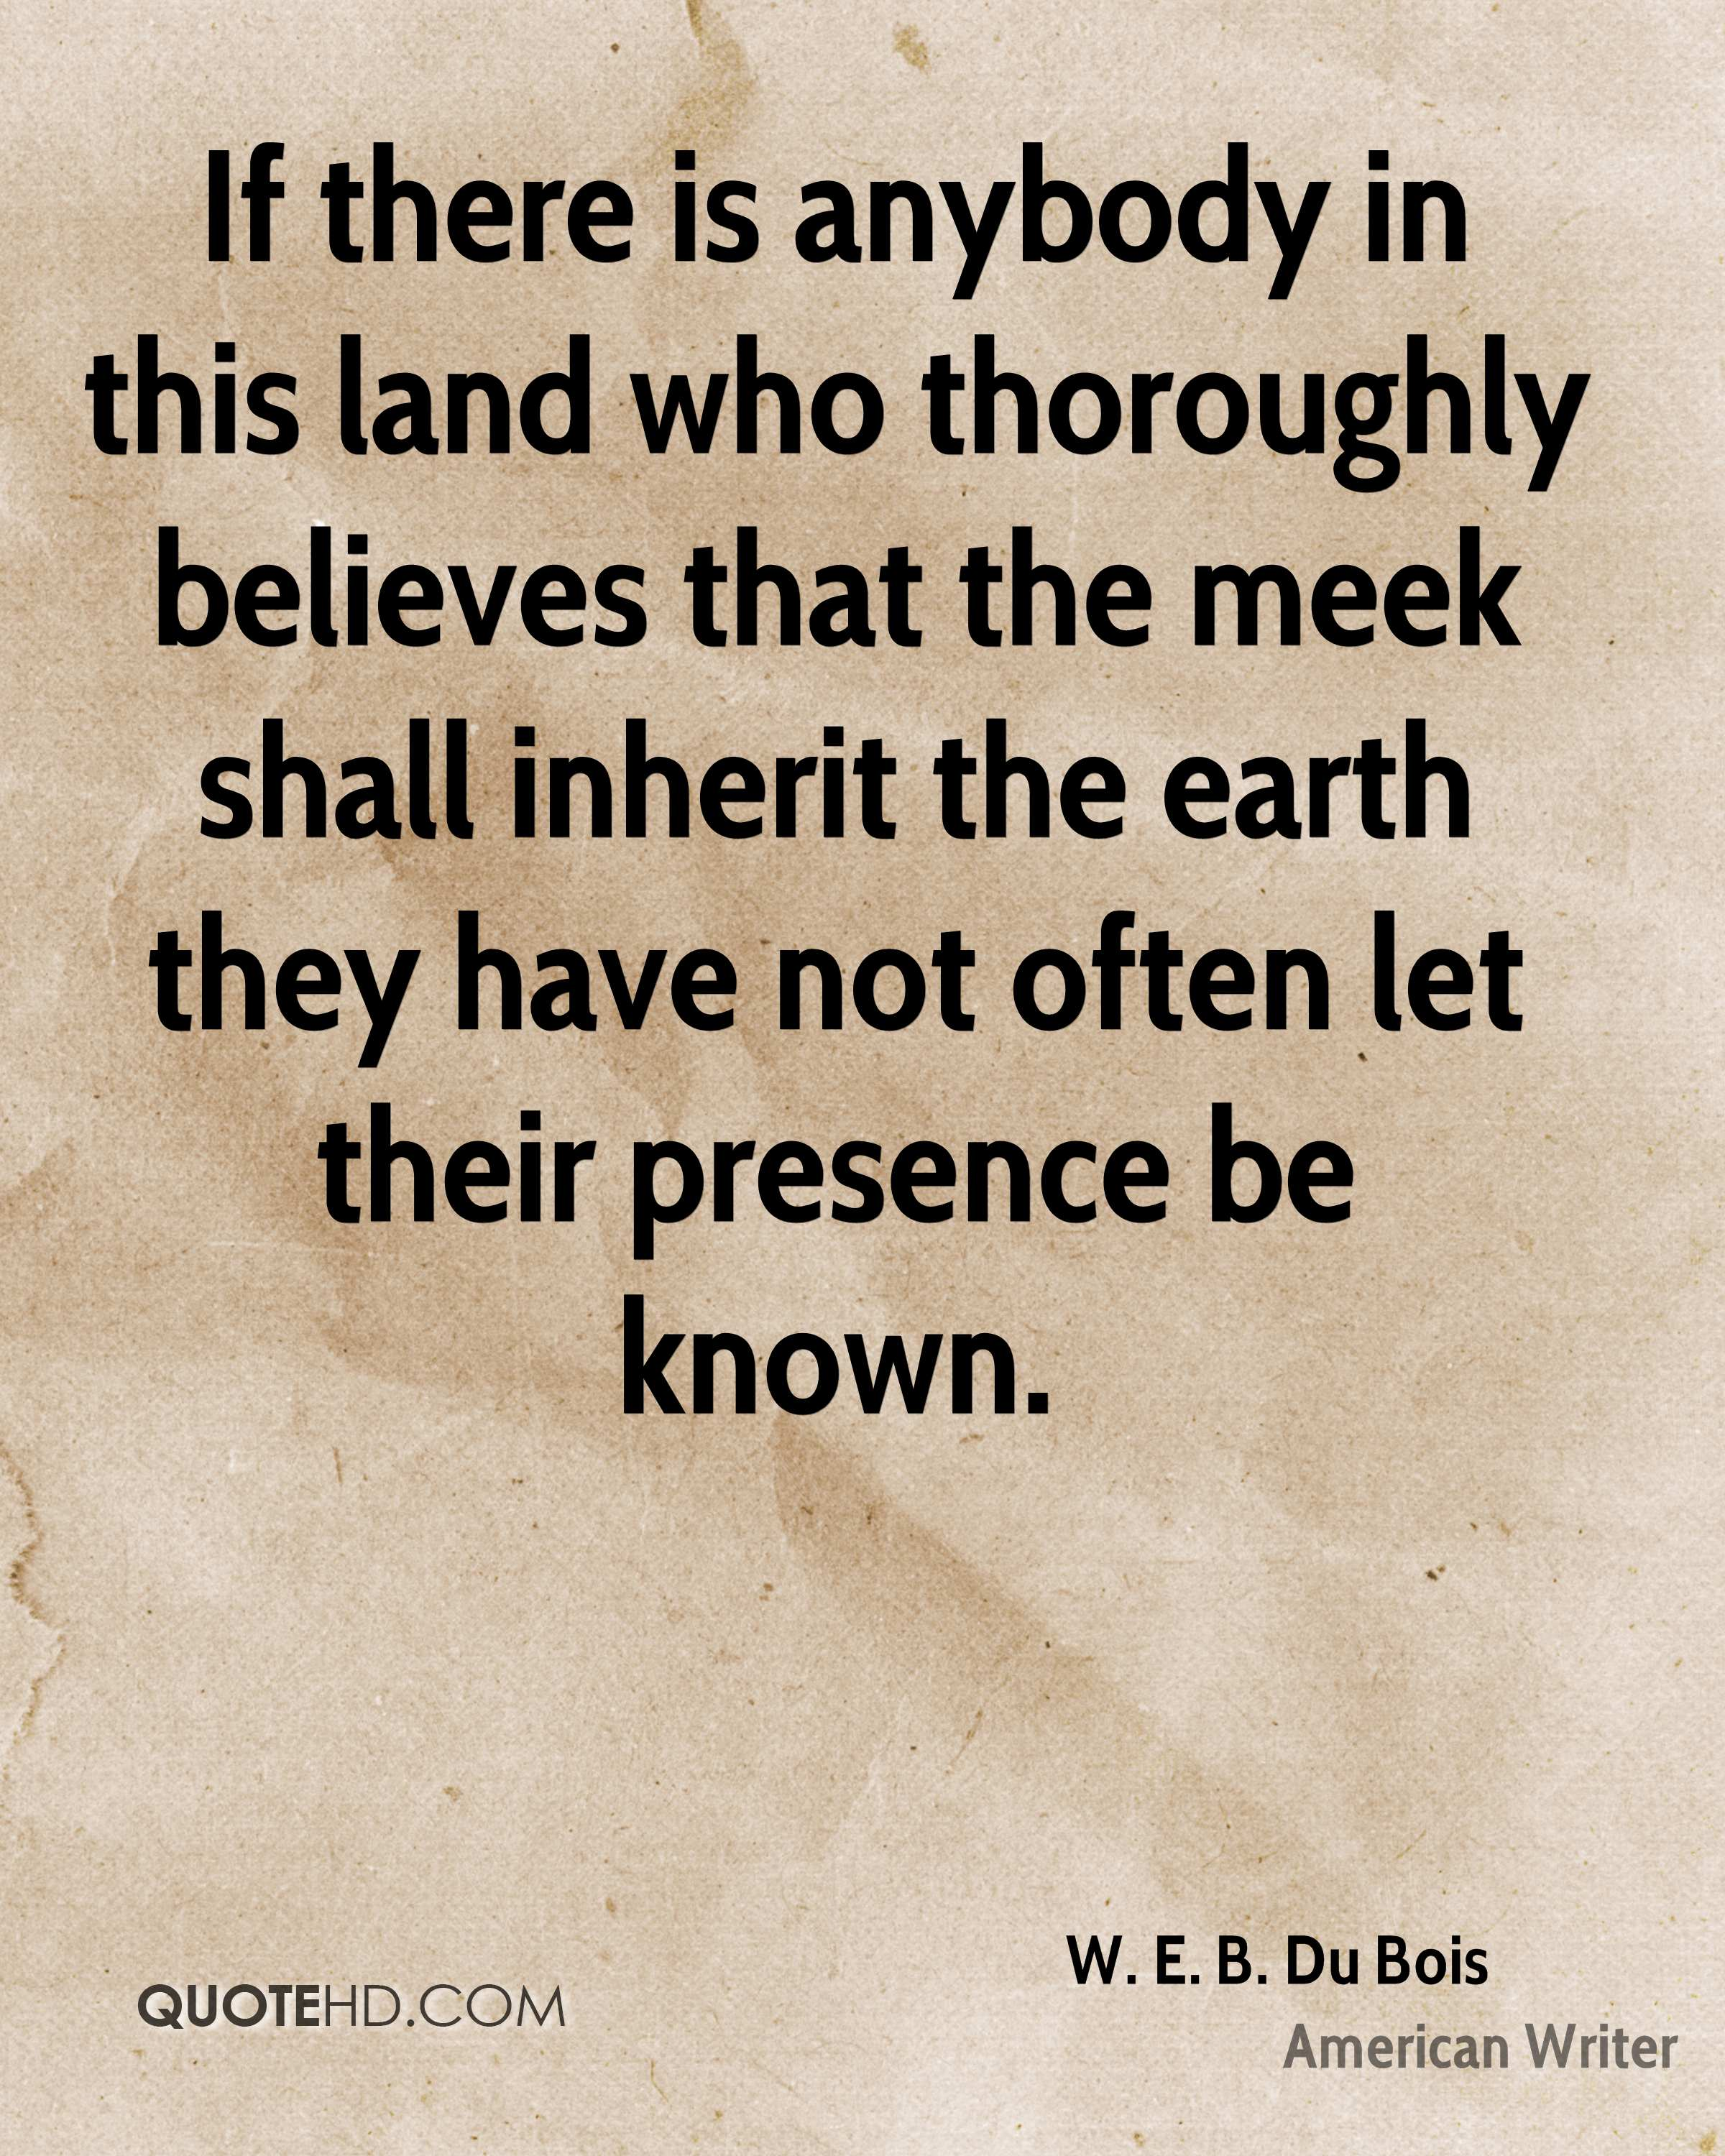 If there is anybody in this land who thoroughly believes that the meek shall inherit the earth they have not often let their presence be known.